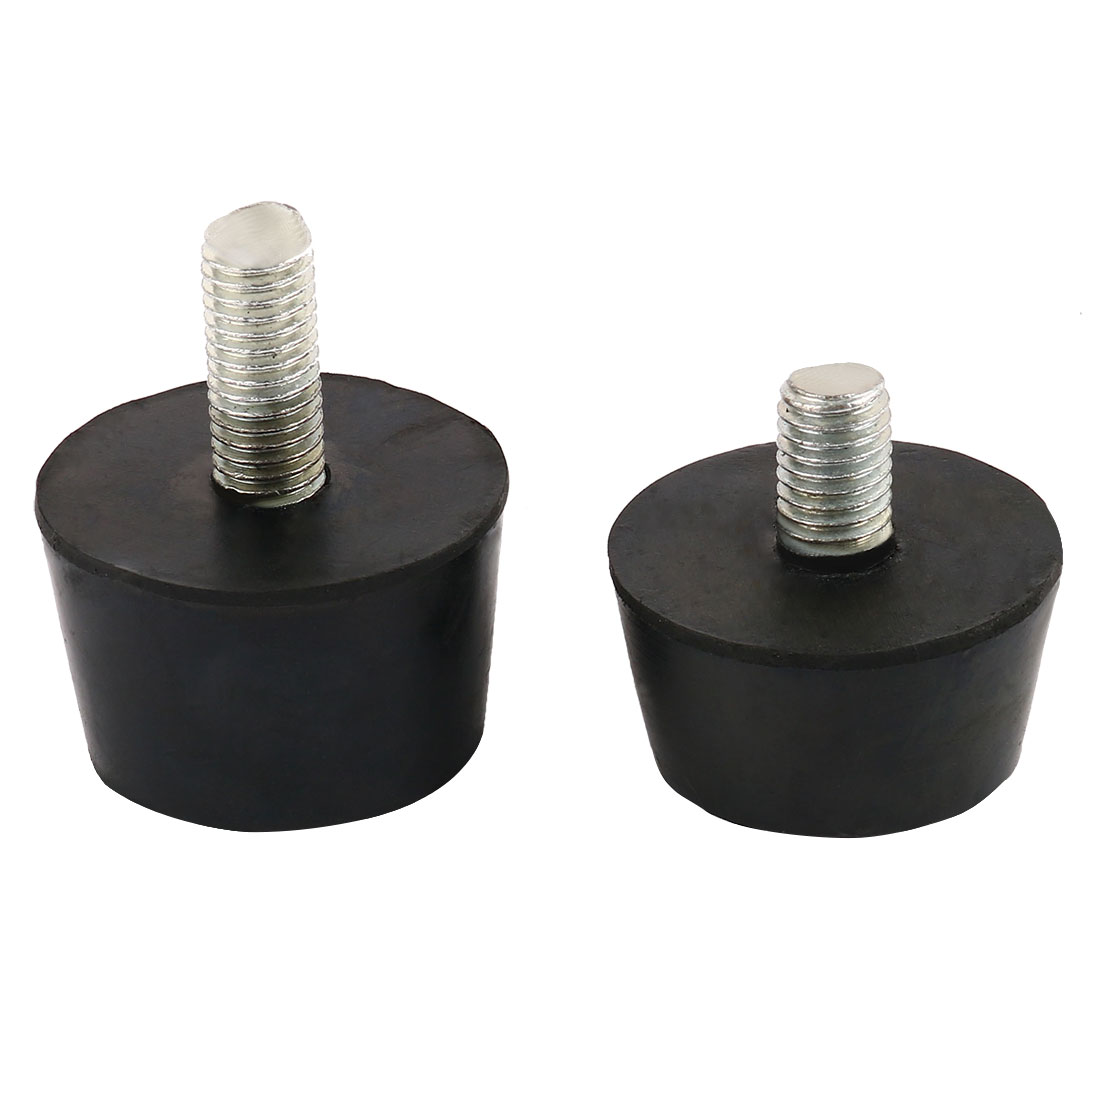 2 Pcs Rubber Base Screw in Chair Table Leg Foot Pads Protectors 8mmx16mm+25mm